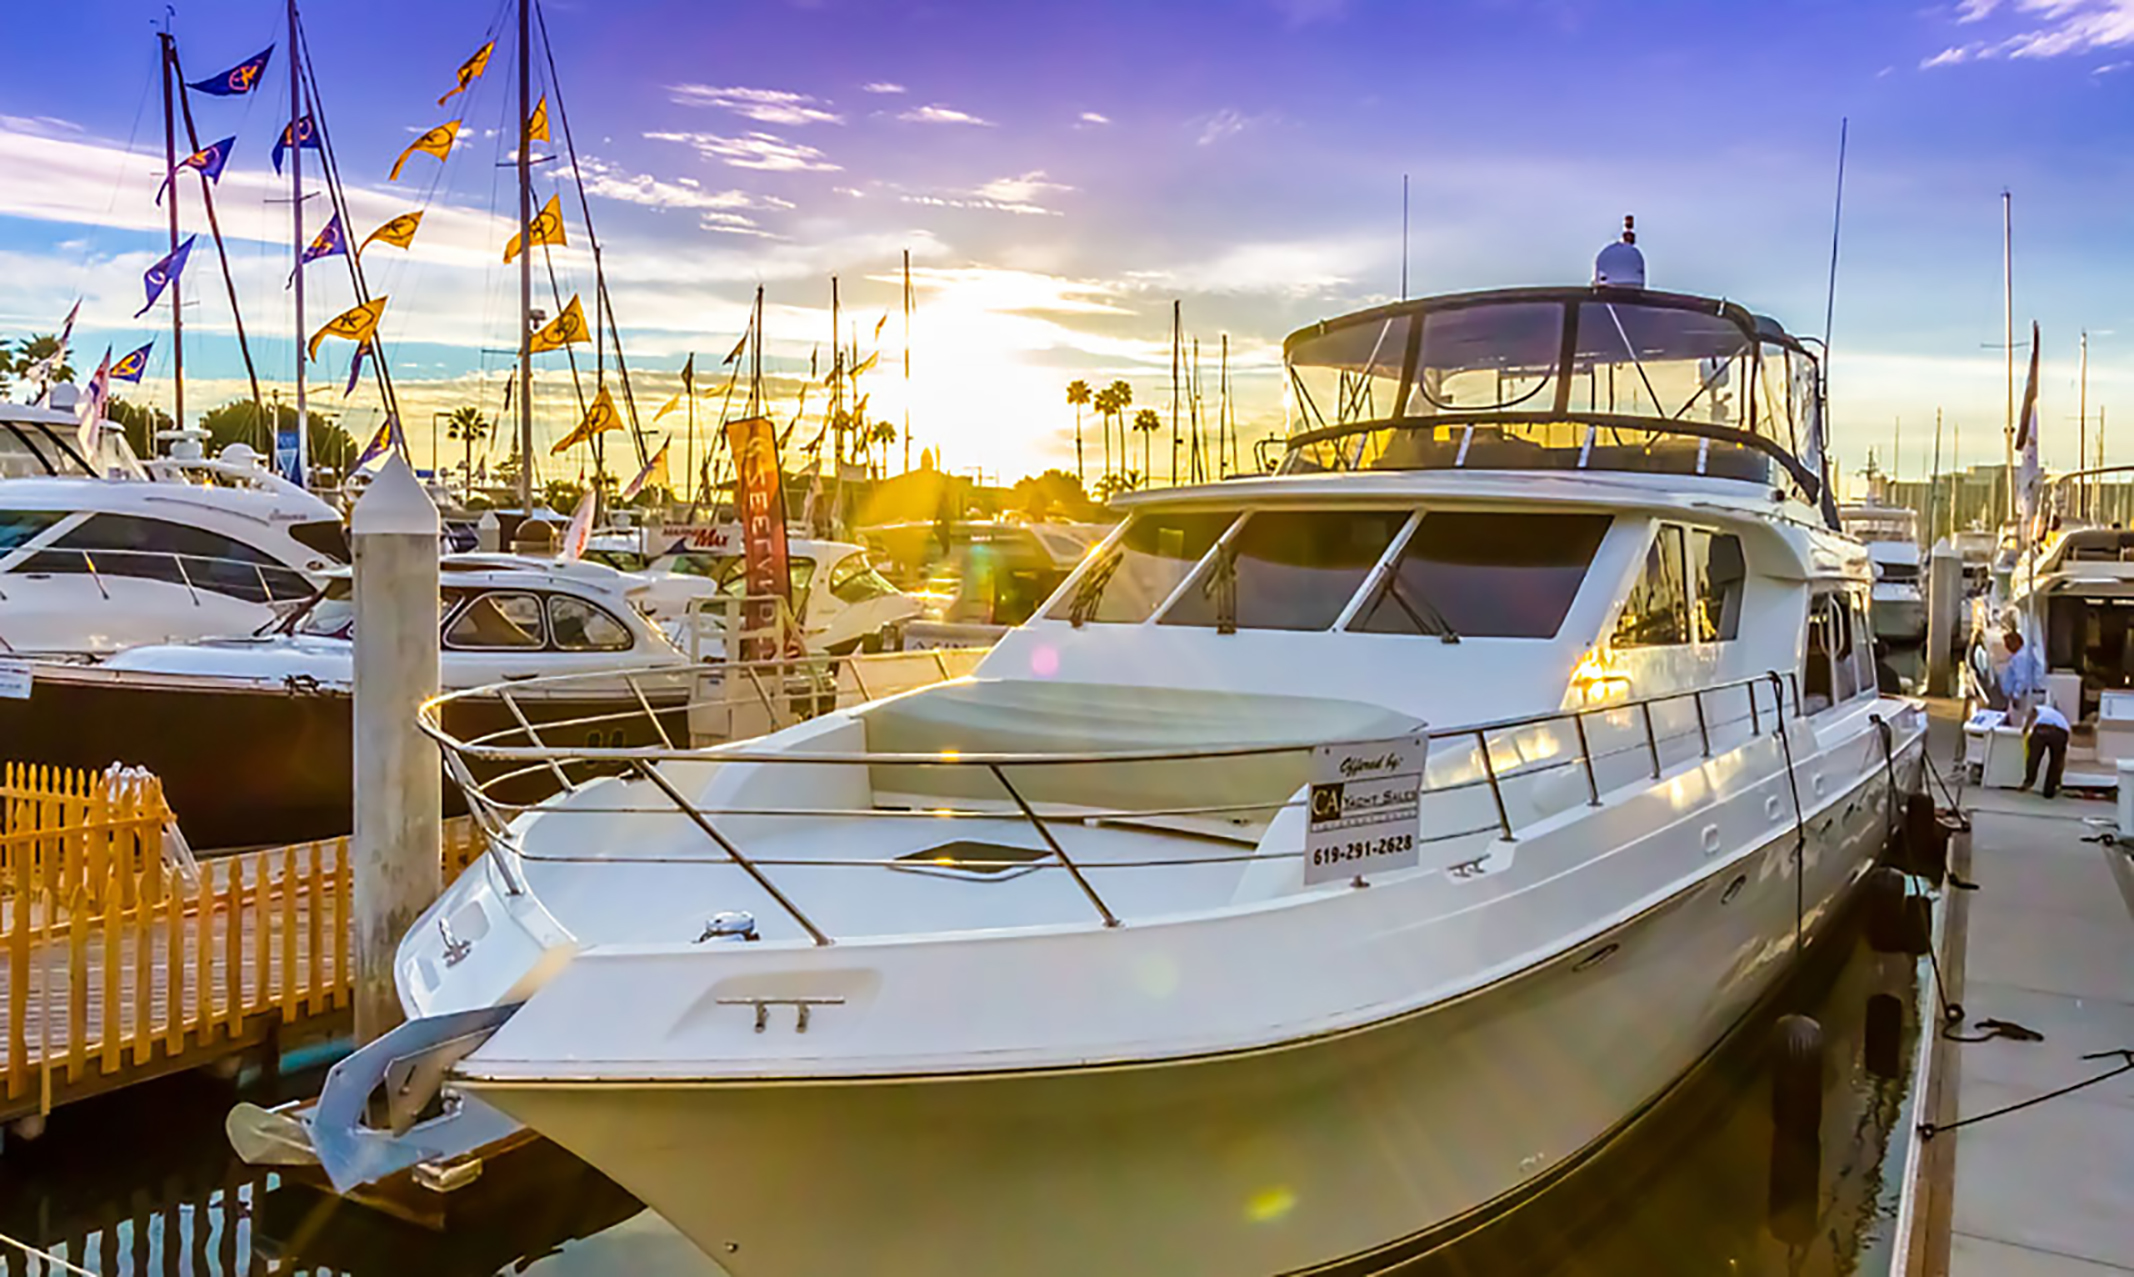 Sunroad Boat Show Friday January 27 2017 Noon To 6 P M San Diego Reader